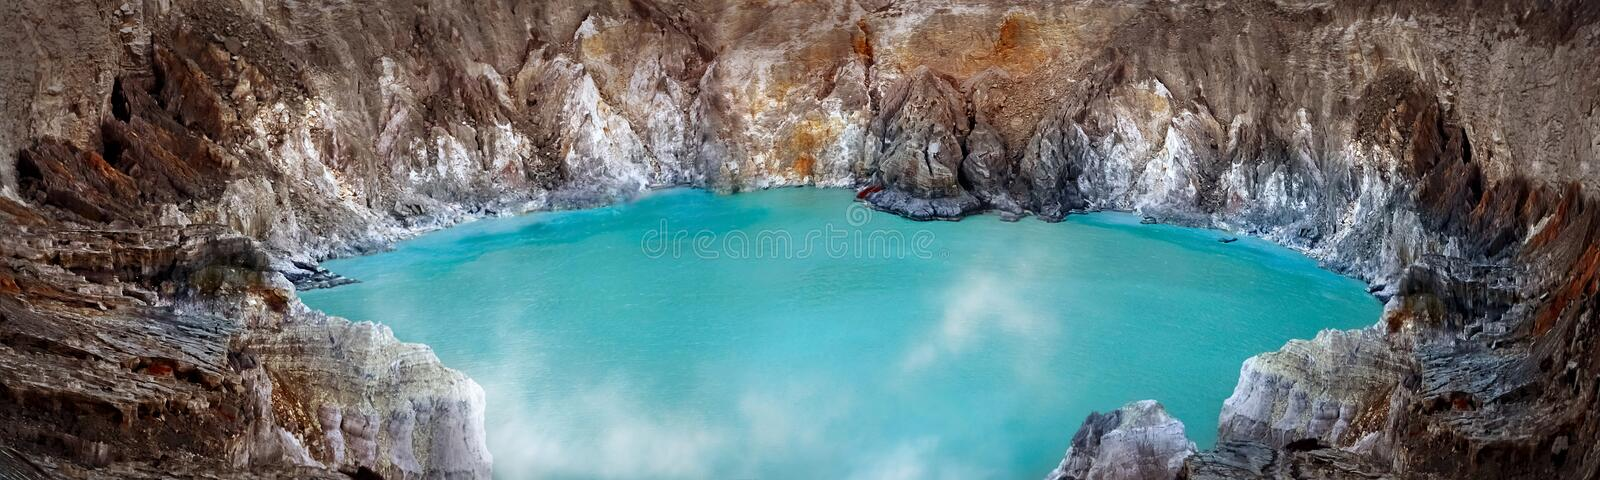 Blue sulfur toxic lake in the crater of the Ijen volcano. Poisonous sulfur smoke. stock photography